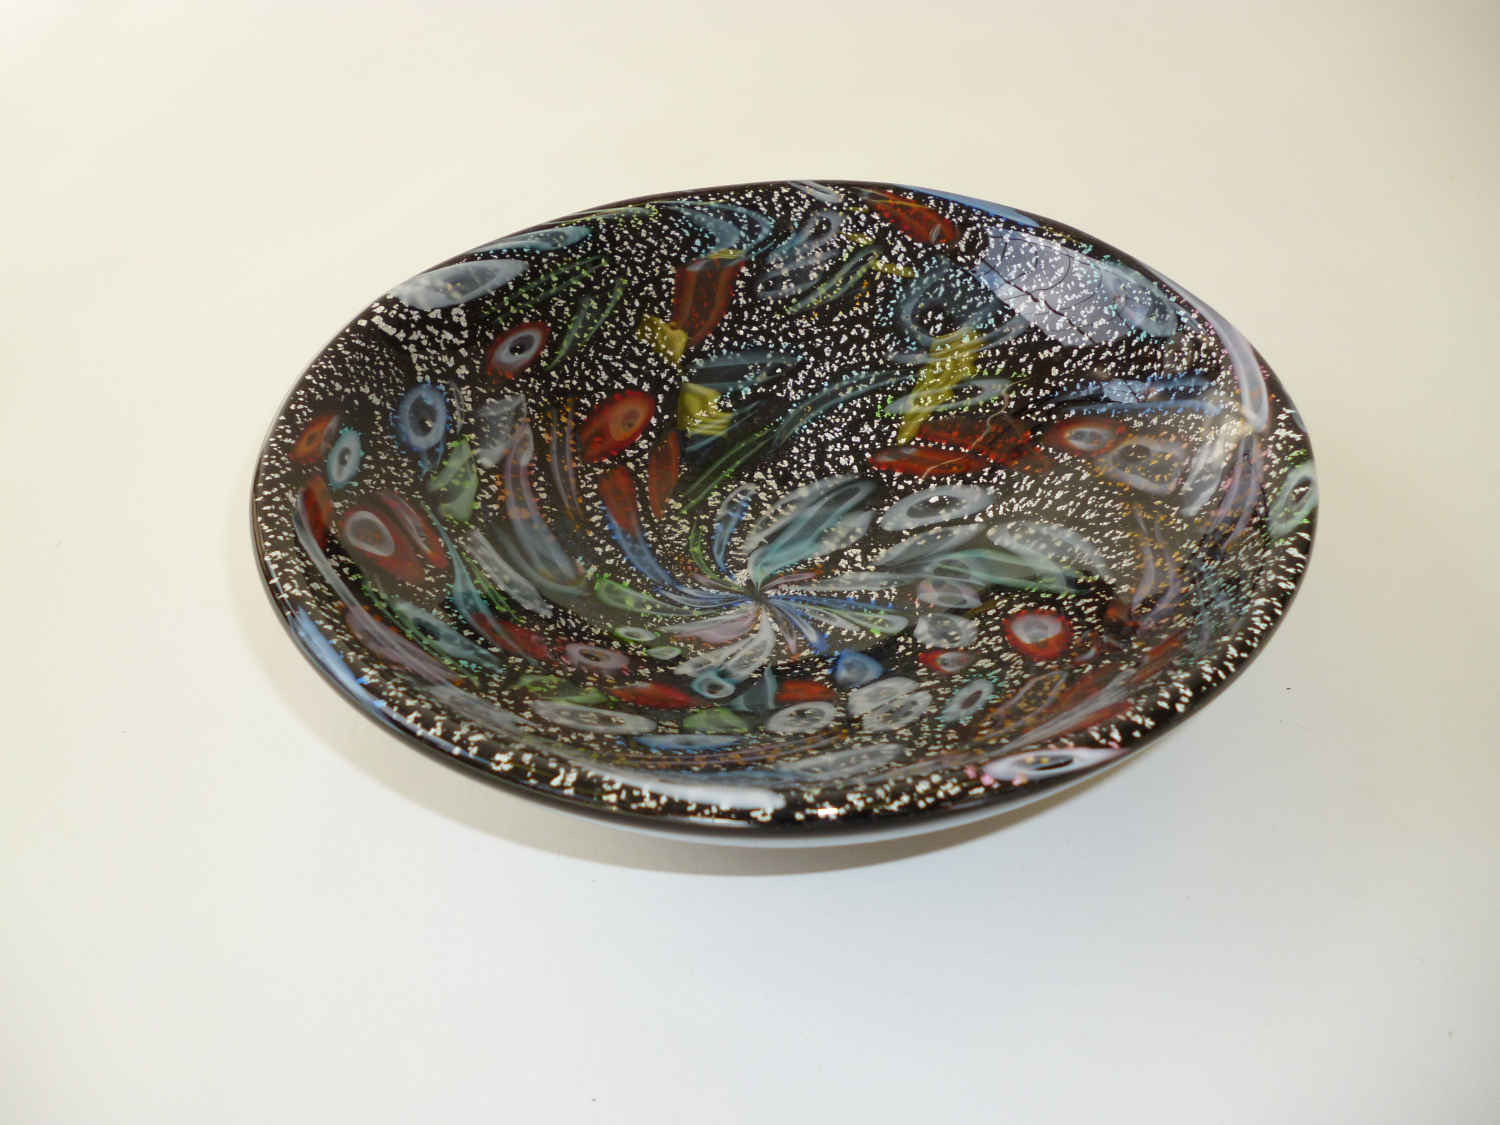 Macedonia Bowl by Fratelli Toso